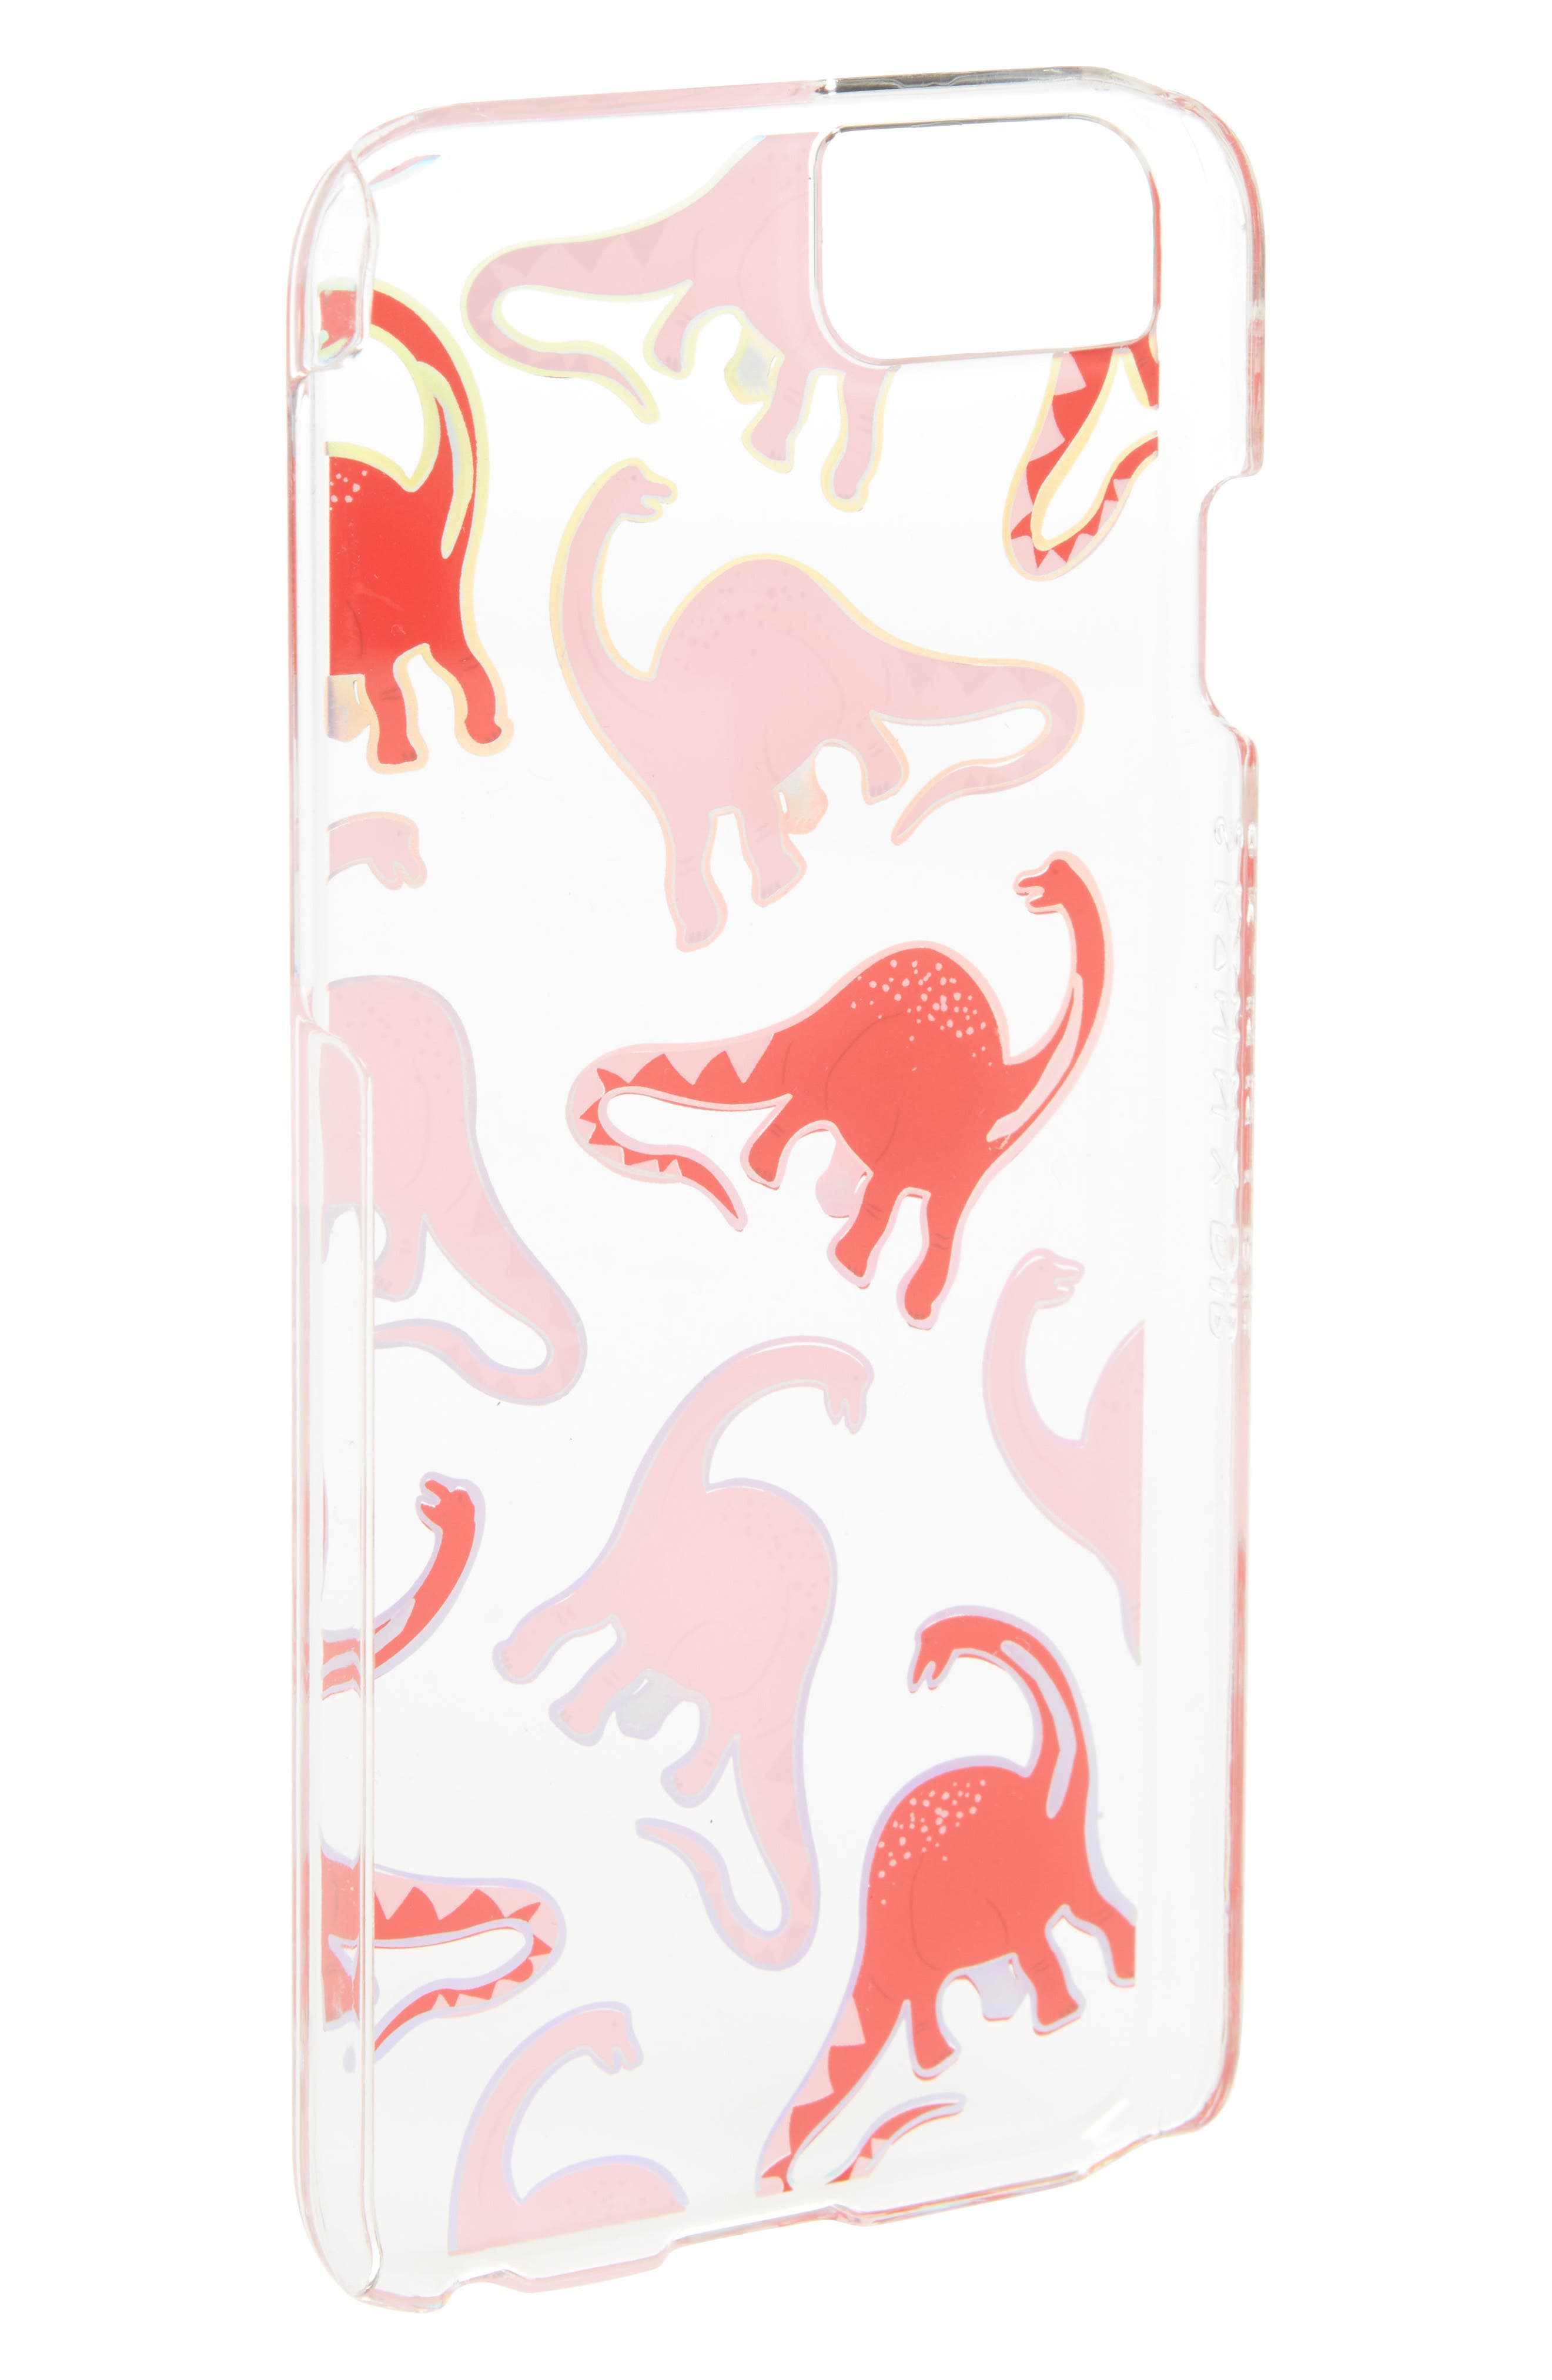 Skinny Dip Pink Dino iPhone 6/6s/7/8 or 6/6s/7/8 Plus Case,                             Alternate thumbnail 2, color,                             Pink